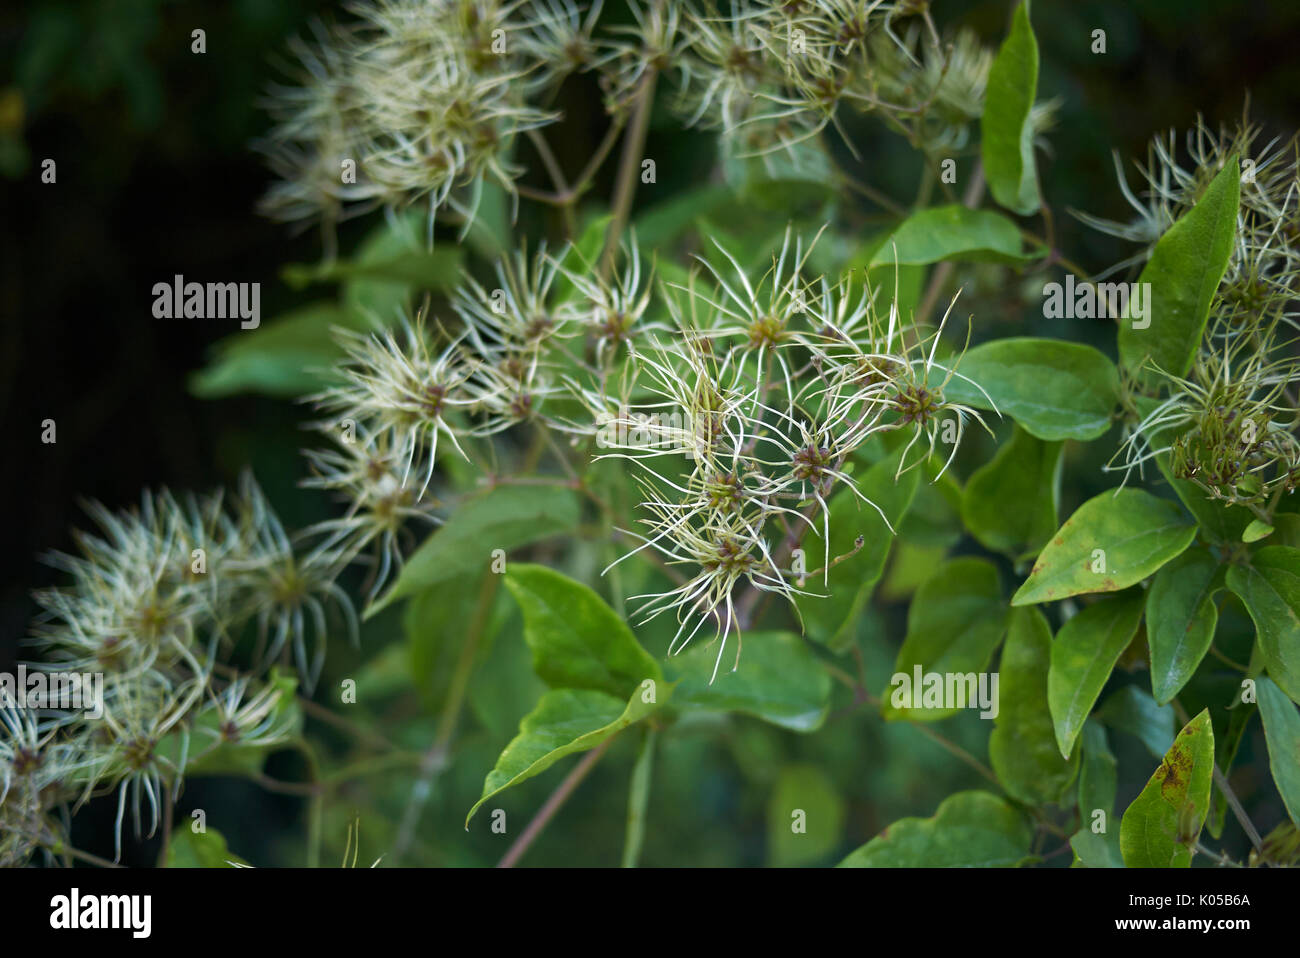 Clematis vitalba close up - Stock Image